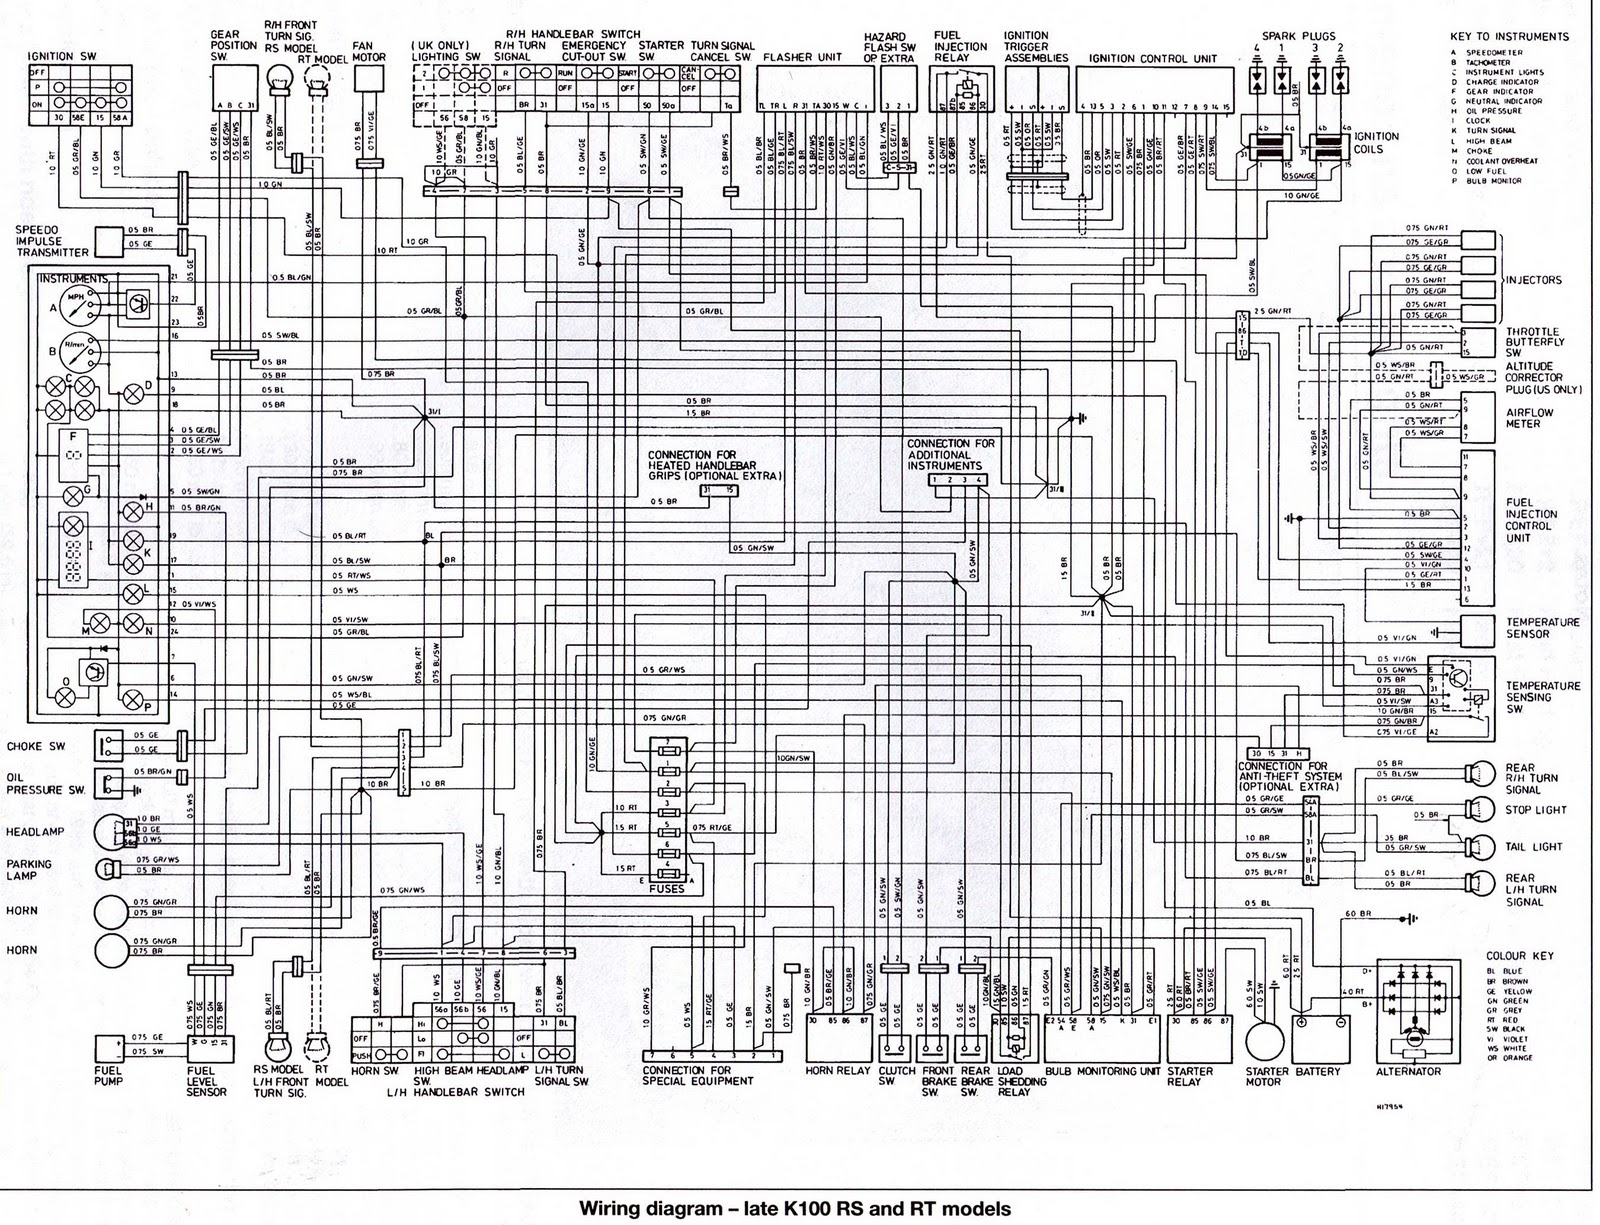 BMW+KR100RS RT+Wiring+Diagram bmw wiring diagram bmw o2 sensor wiring diagram \u2022 wiring diagrams bmw e60 wiring diagram at honlapkeszites.co